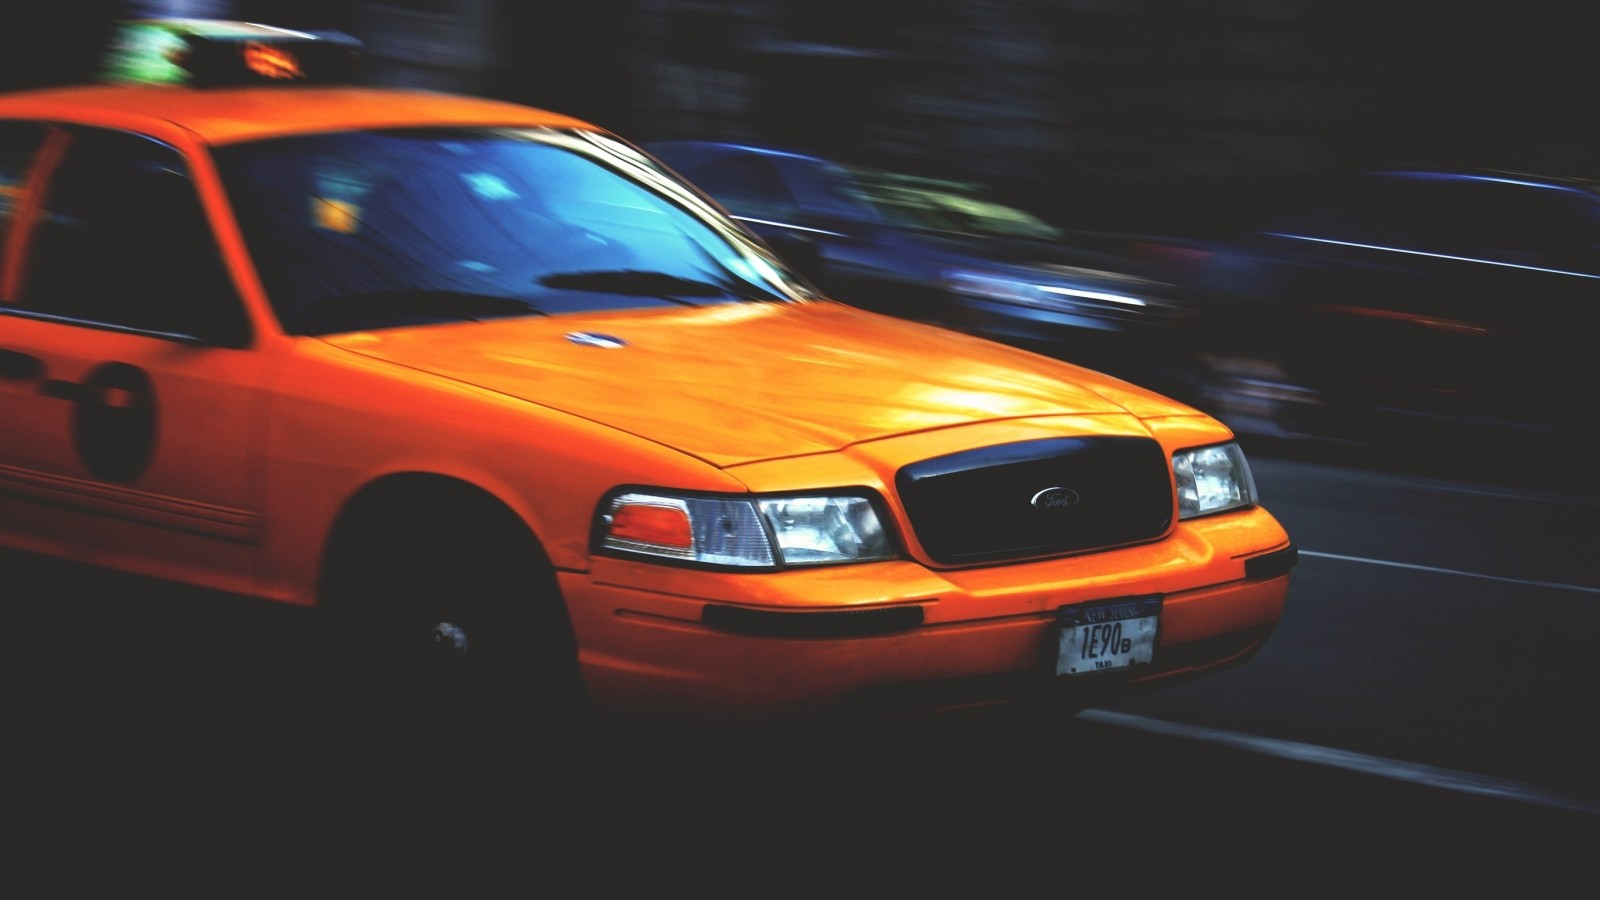 yellow-taxi-cab-urban-city-street-car-travel